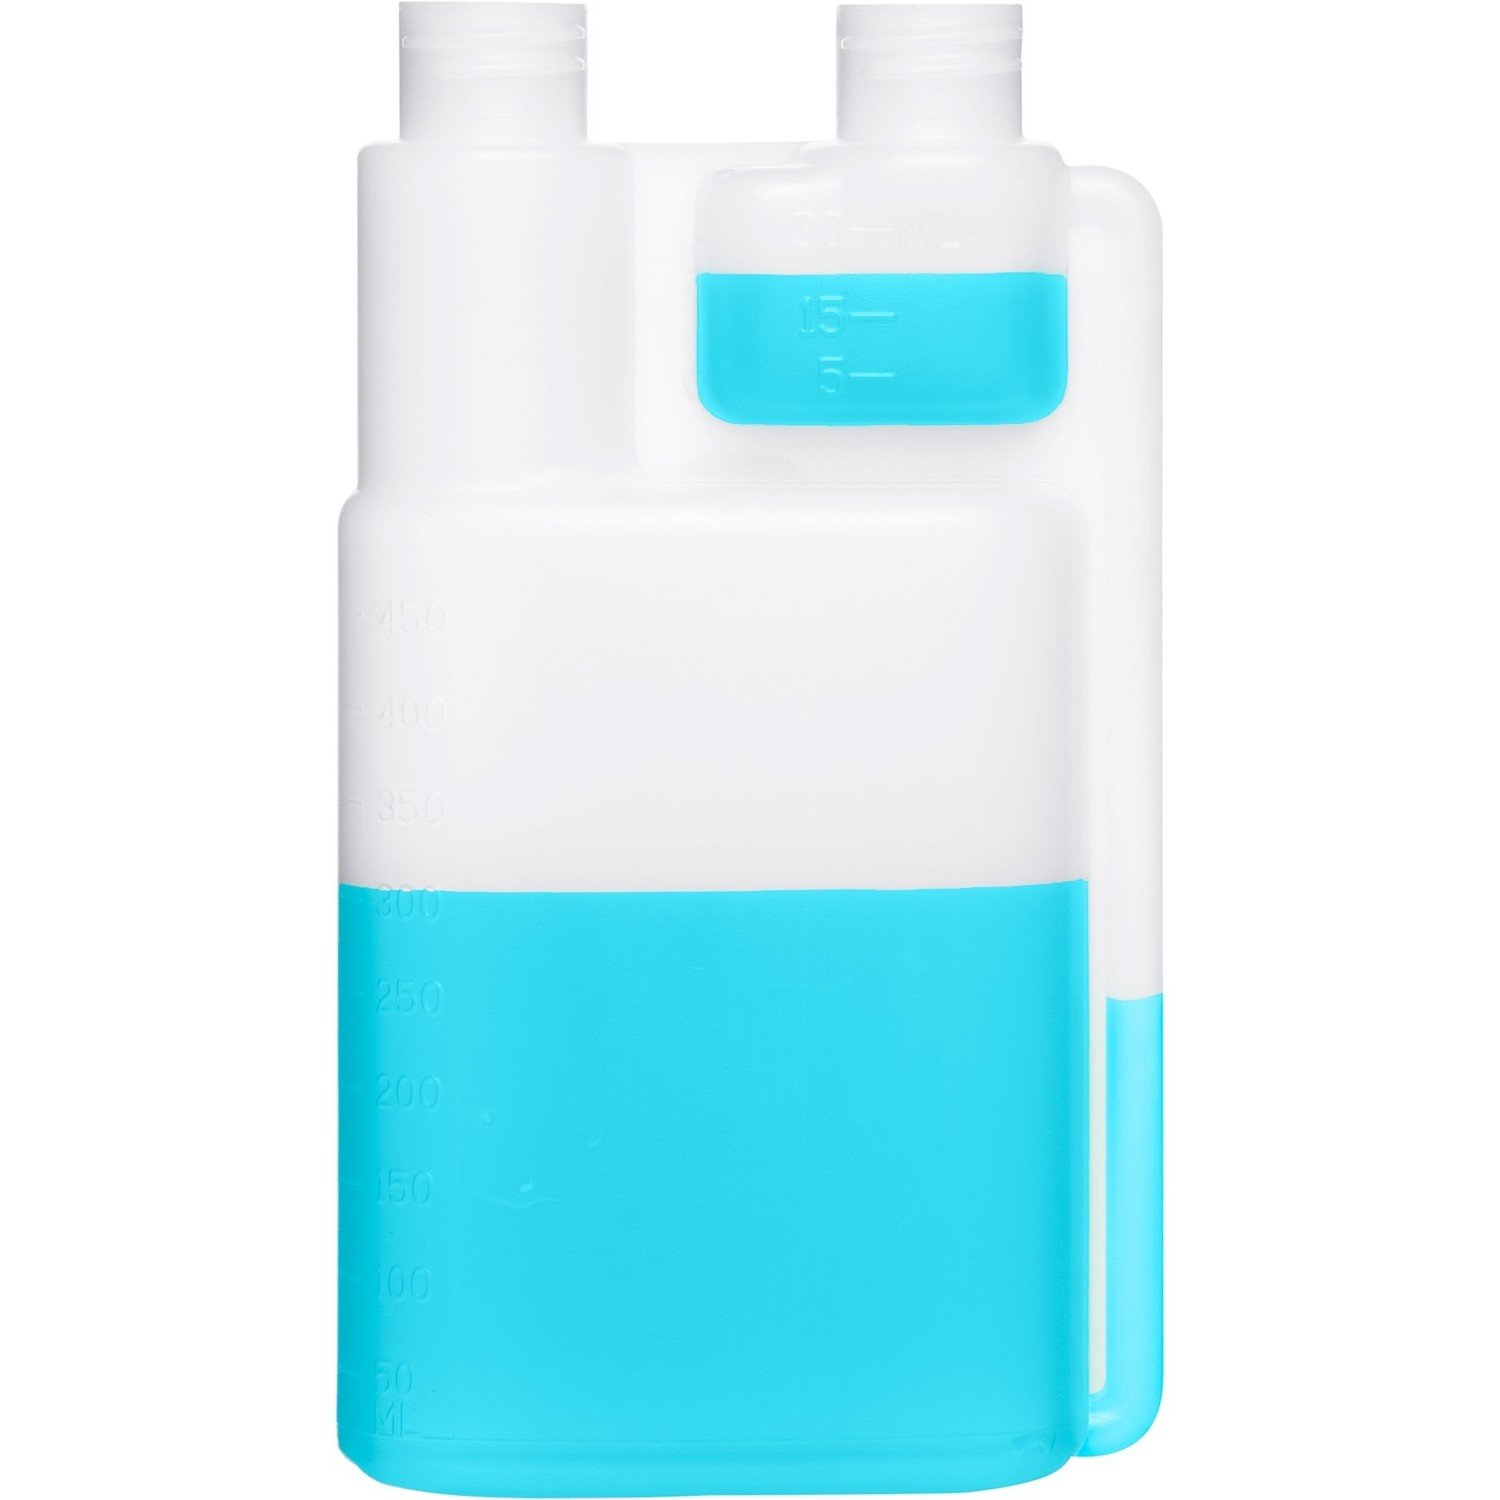 Twin Neck Dosing Bottles(Pack of Two, 1 Liter each)